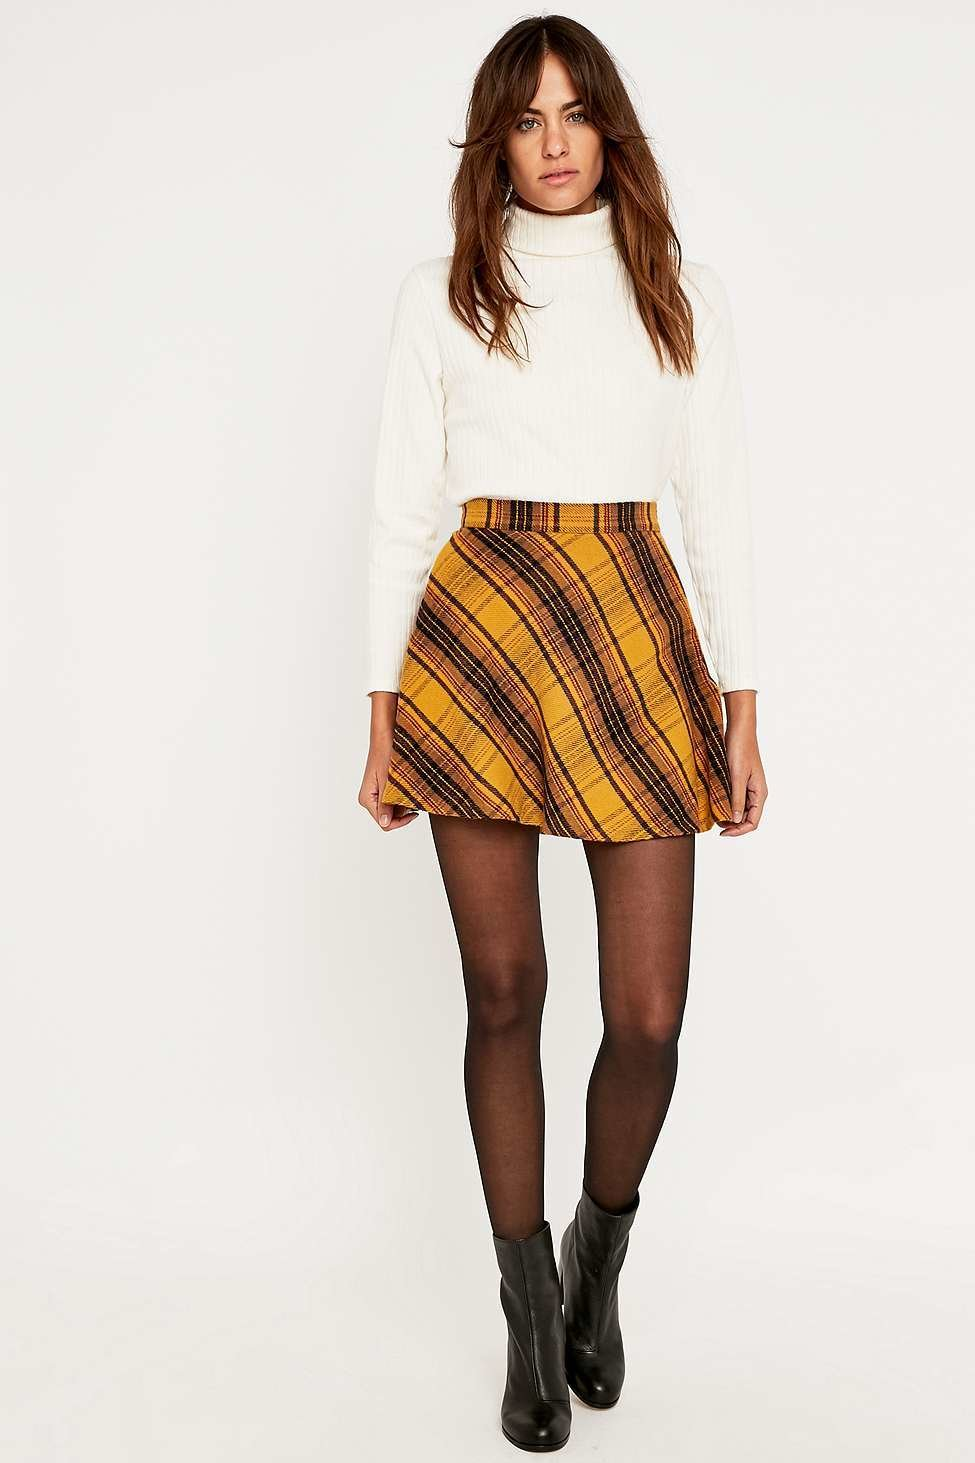 317062c65 Urban Outfitters Bias Yellow Plaid Skirt - Urban Outfitters | reve